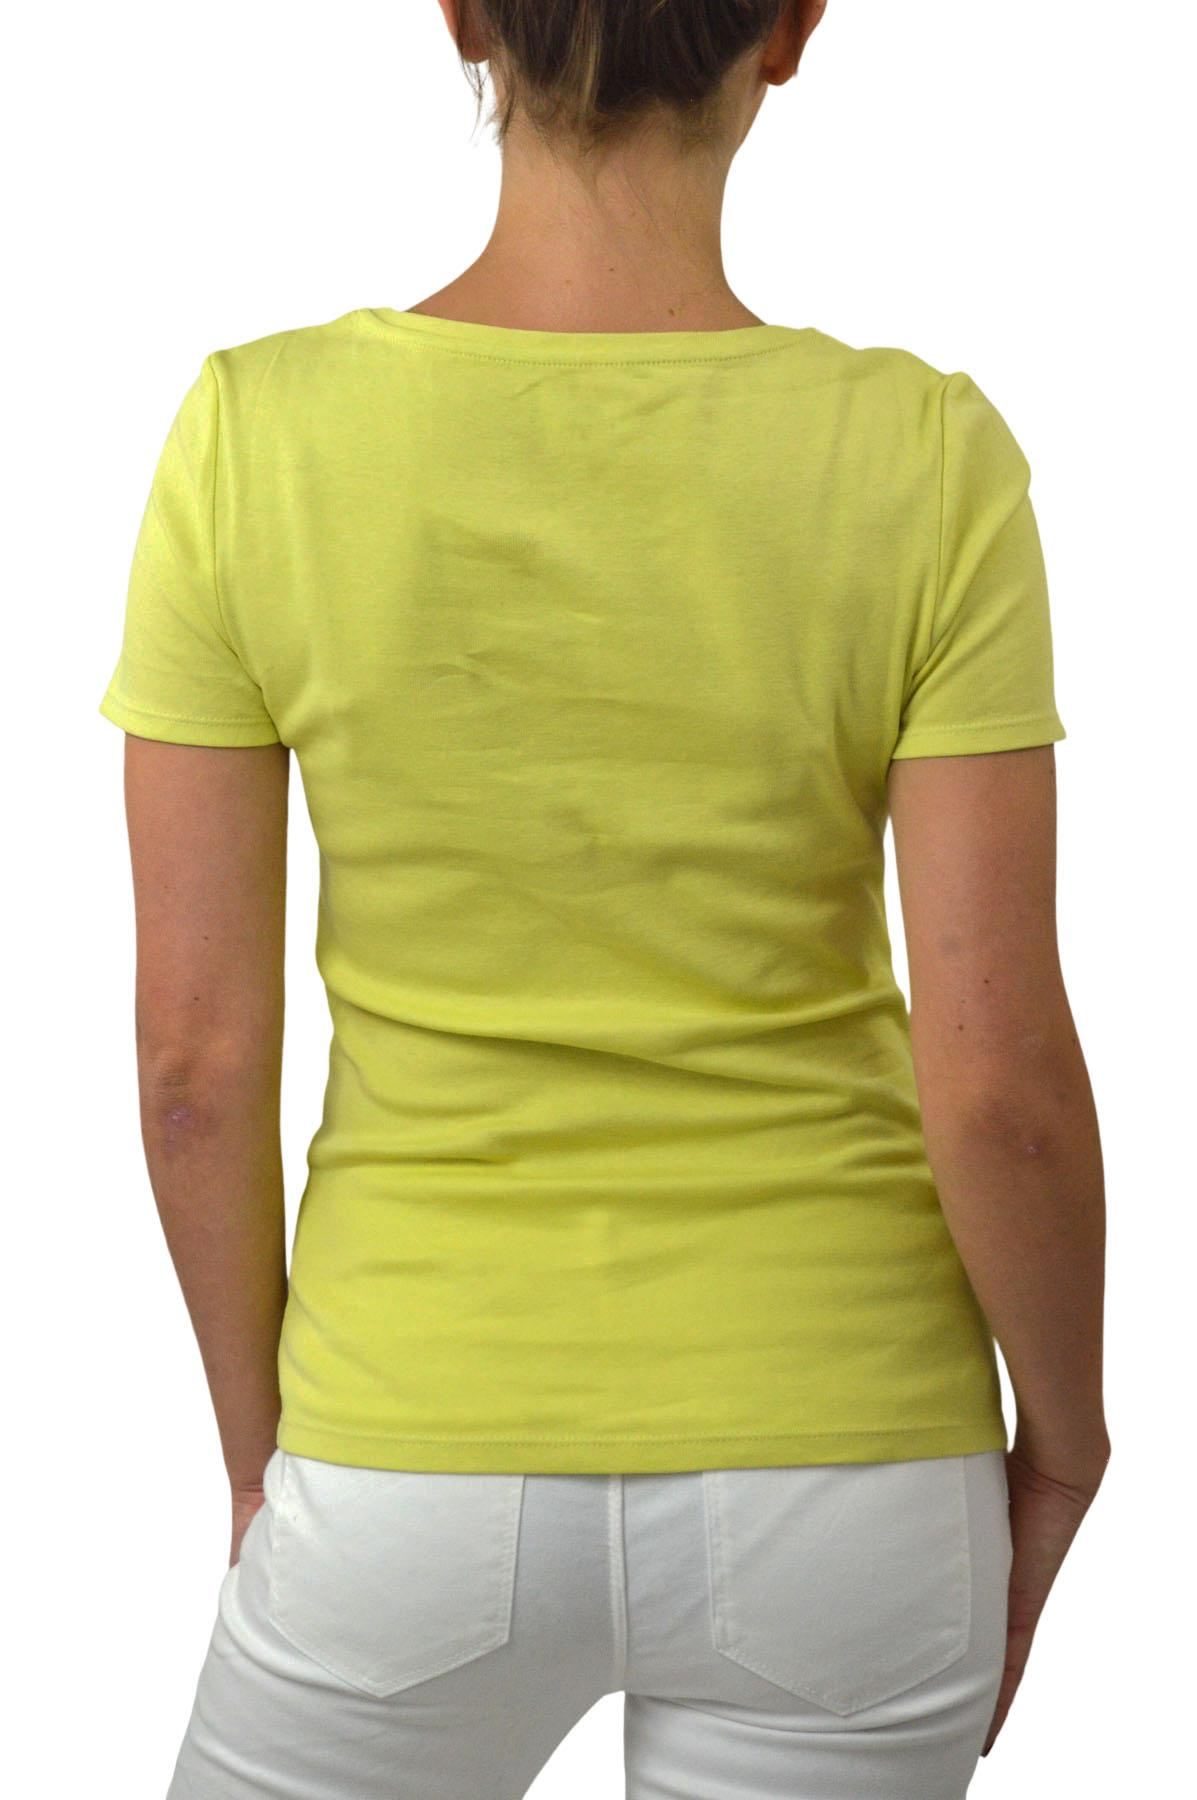 M-amp-S-Ladies-Short-Sleeve-Cotton-T-Shirt-Slim-Fit-Curved-Hem-Size-4-to-24 thumbnail 13